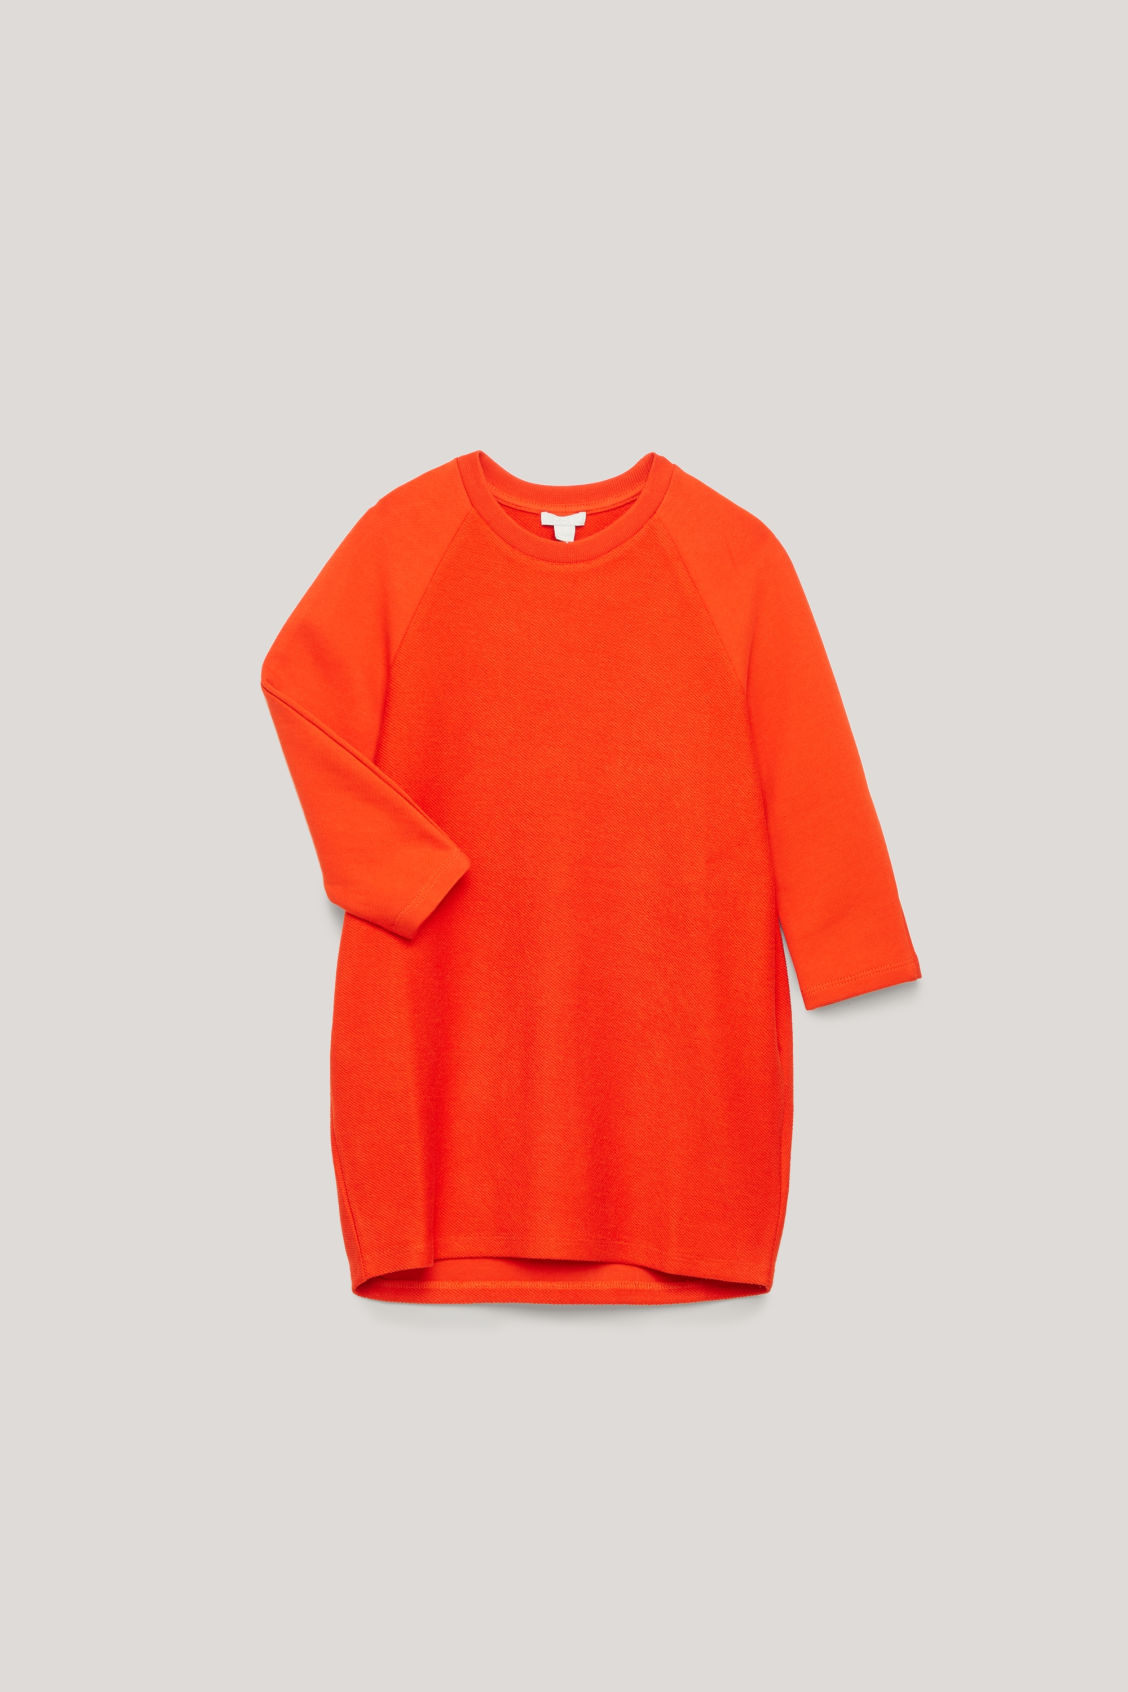 Detailed image of Cos rounded-sleeve jersey dress in orange